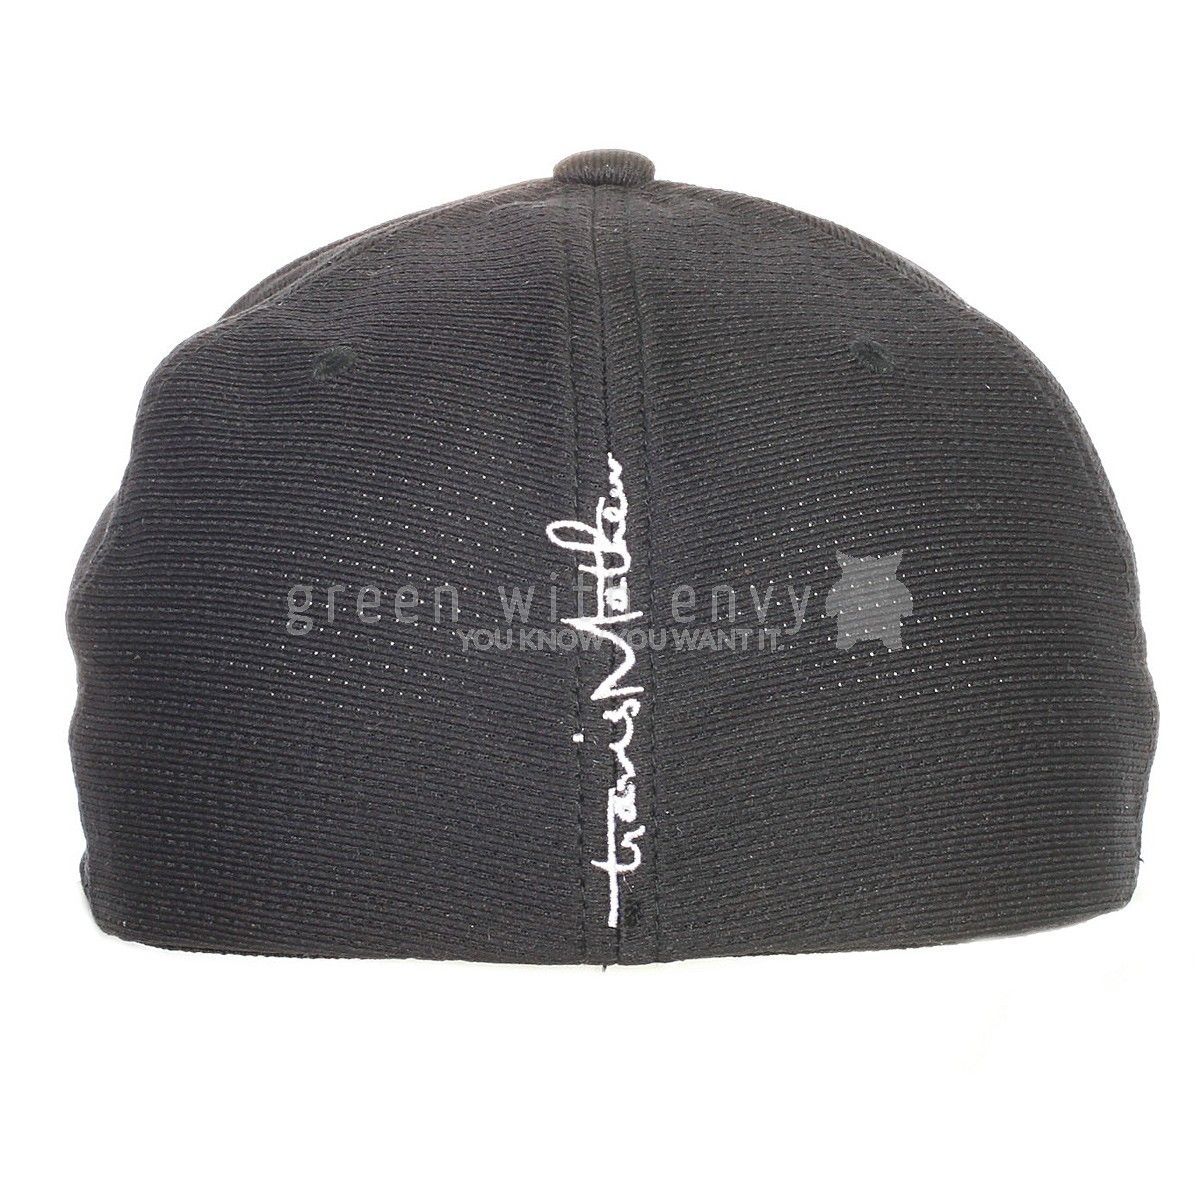 d70b6b1fb Soft mesh hat with flex fit band. Embroidered TM logo with outline ...